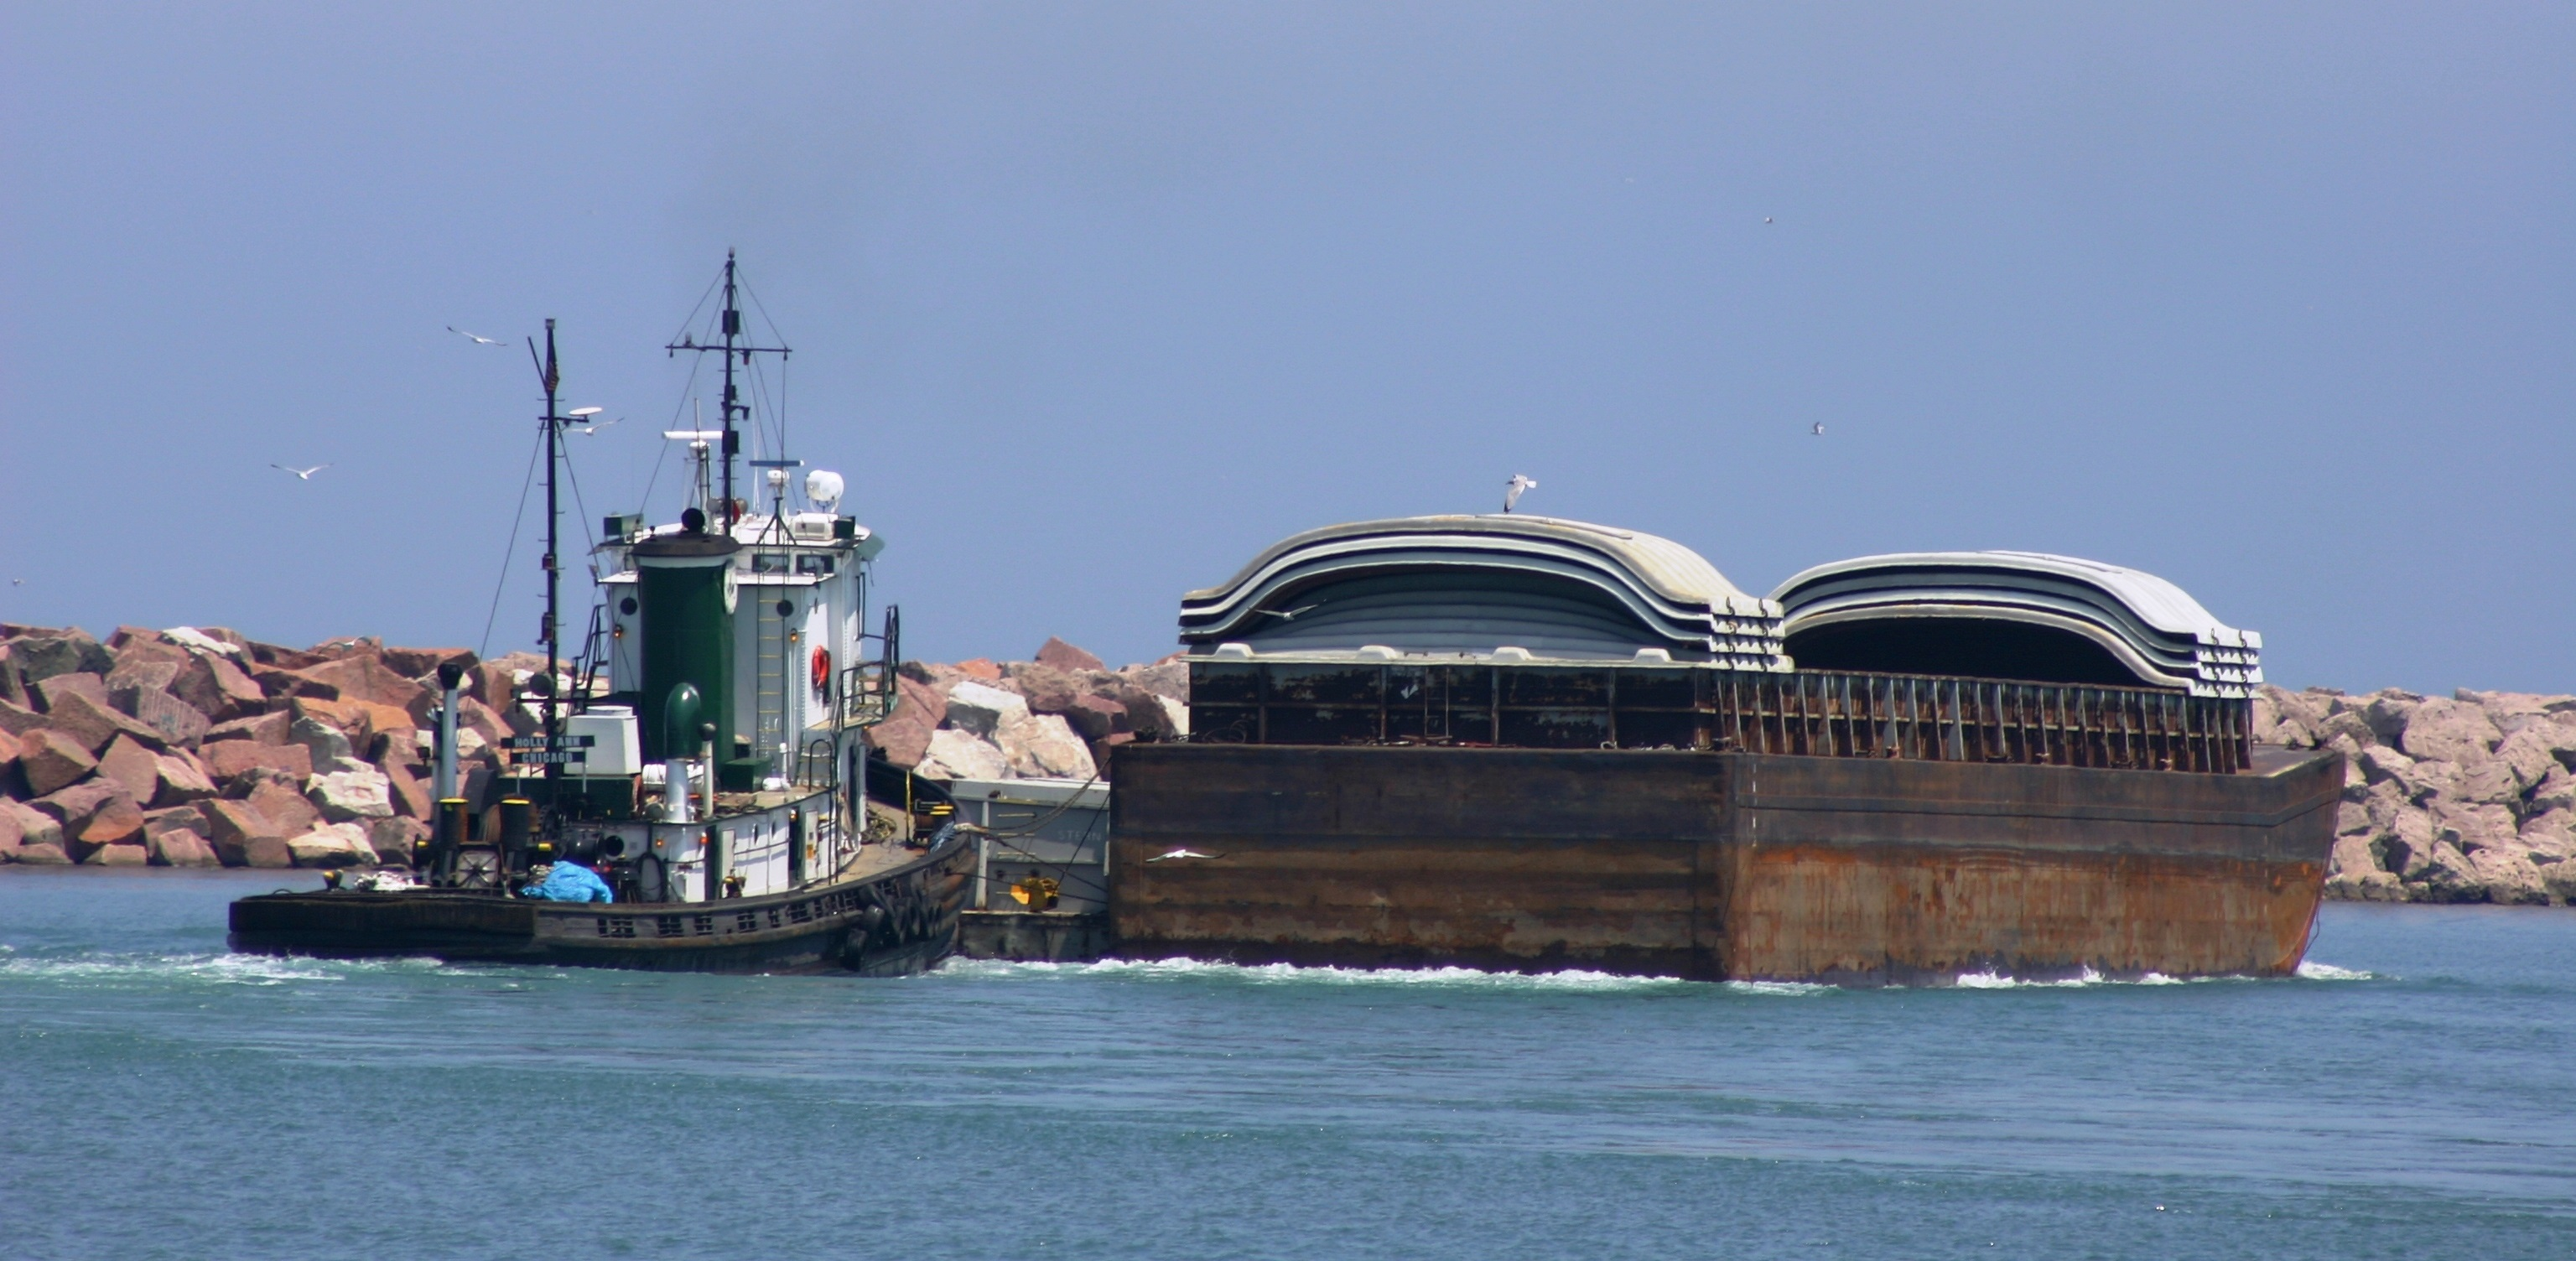 Photo courtesy of C:\Users\mseller\Desktop\Great Lakes Now\Gary Wilson\Keeping carp out of the Great Lakes\Ian_Hirt,_Port_Director_Port of Indiana–Burns Harbor